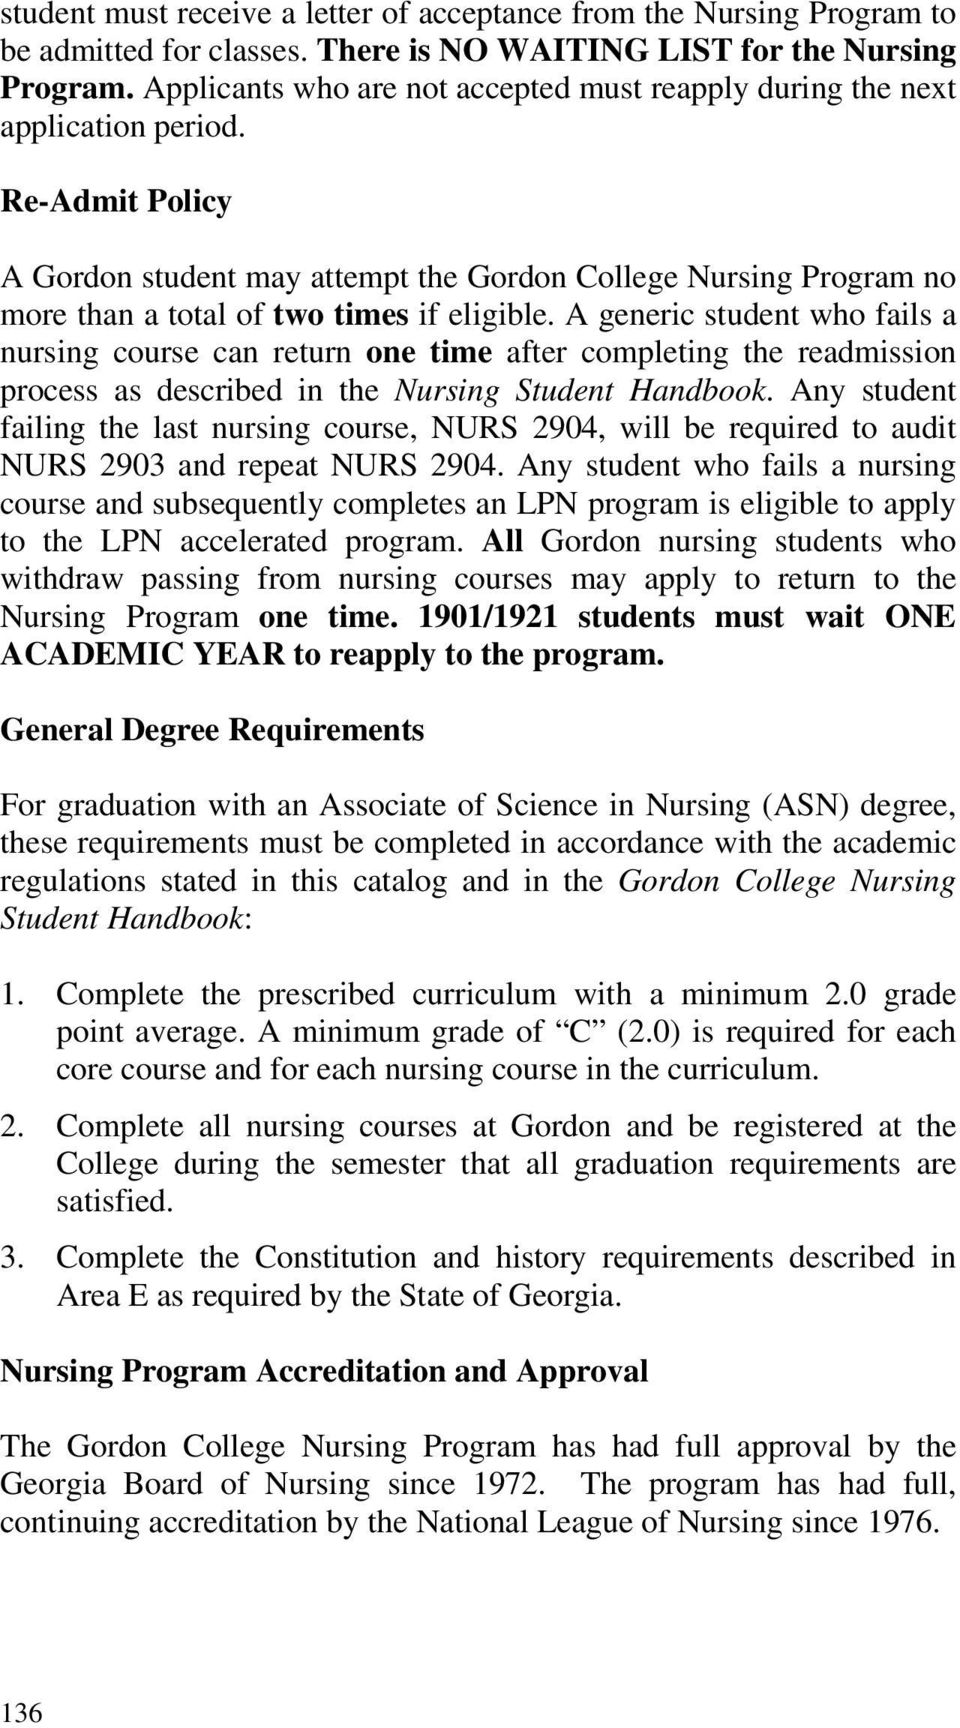 Re-Admit Policy A Gordon student may attempt the Gordon College Nursing Program no more than a total of two times if eligible.